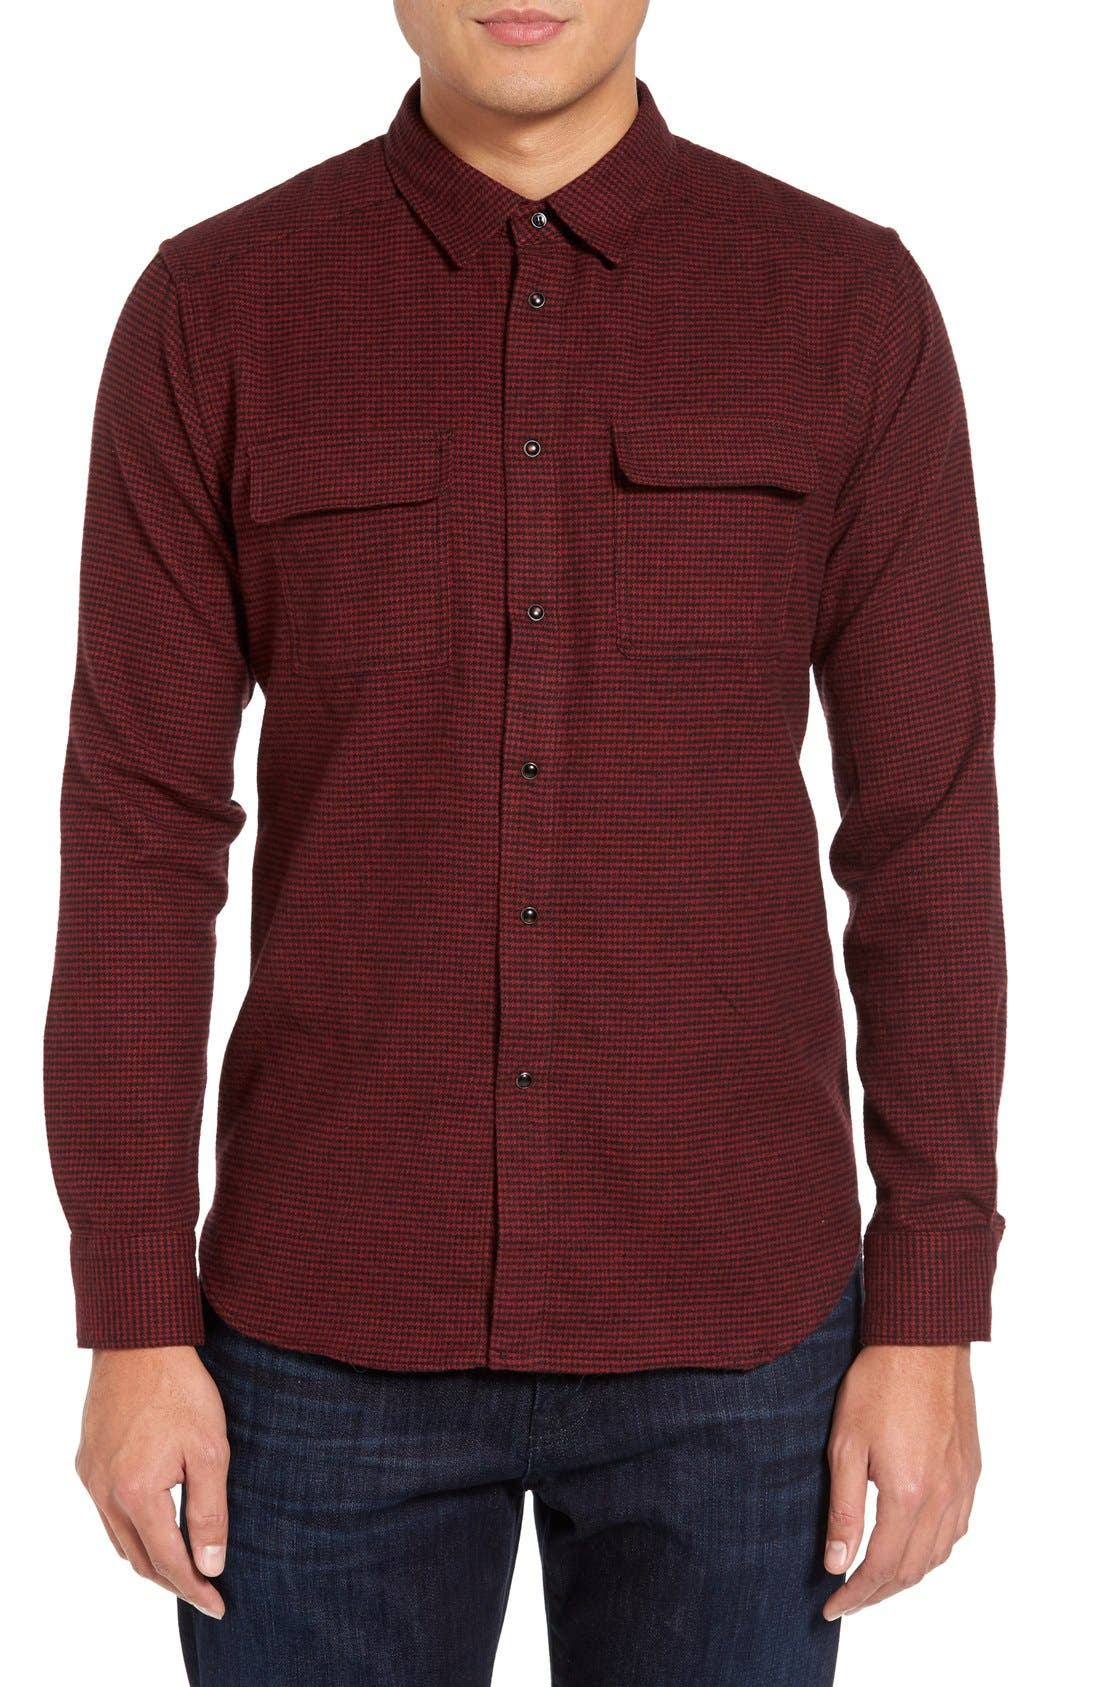 Alternate Image 1 Selected - Slate & Stone Parker Slim Fit Houndstooth Flannel Shirt